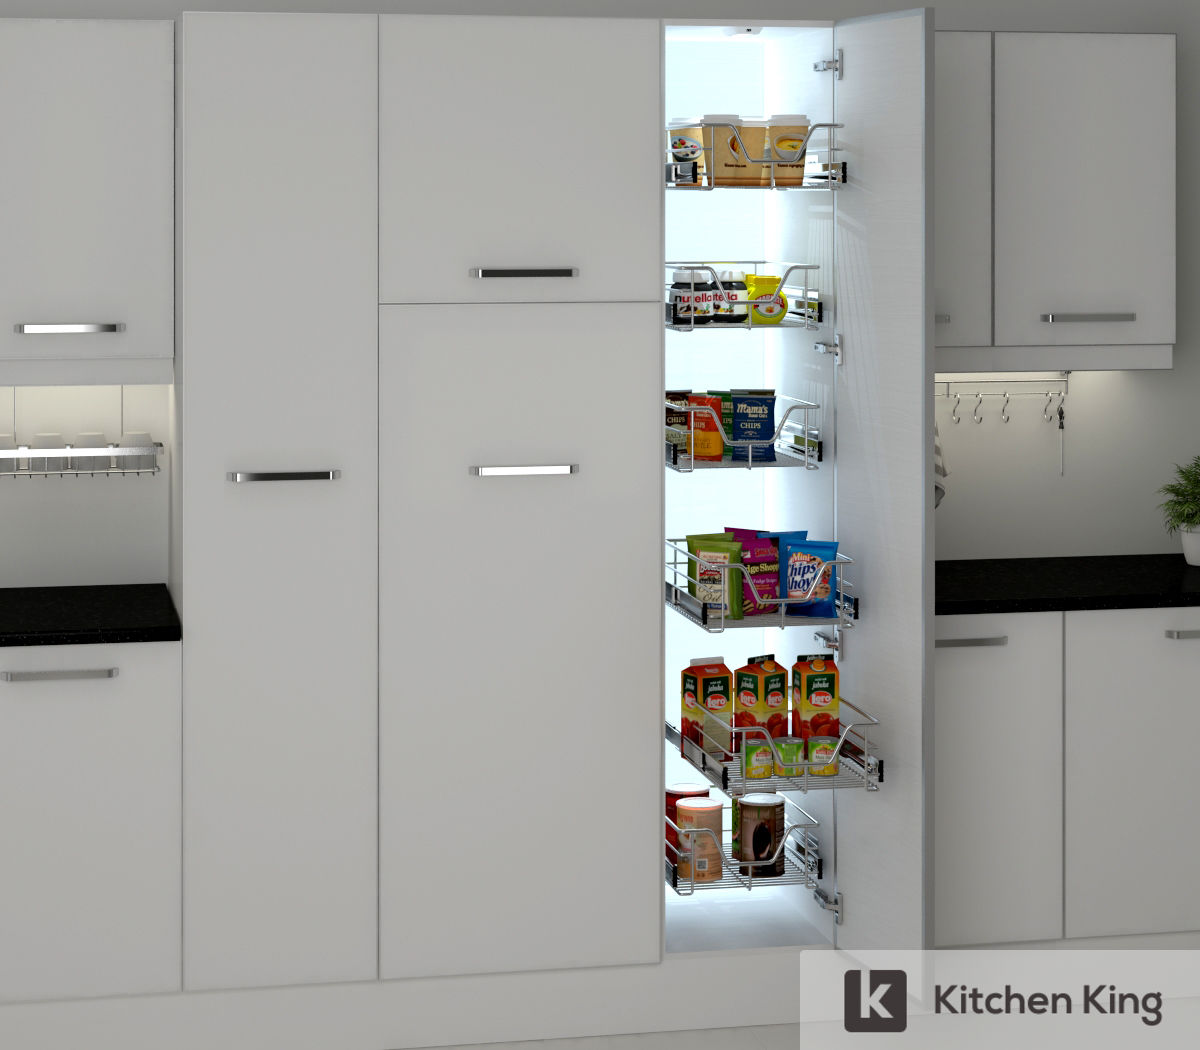 Kitchen cabinets company in dubai kitchen cabinets Kitchen design companies uae